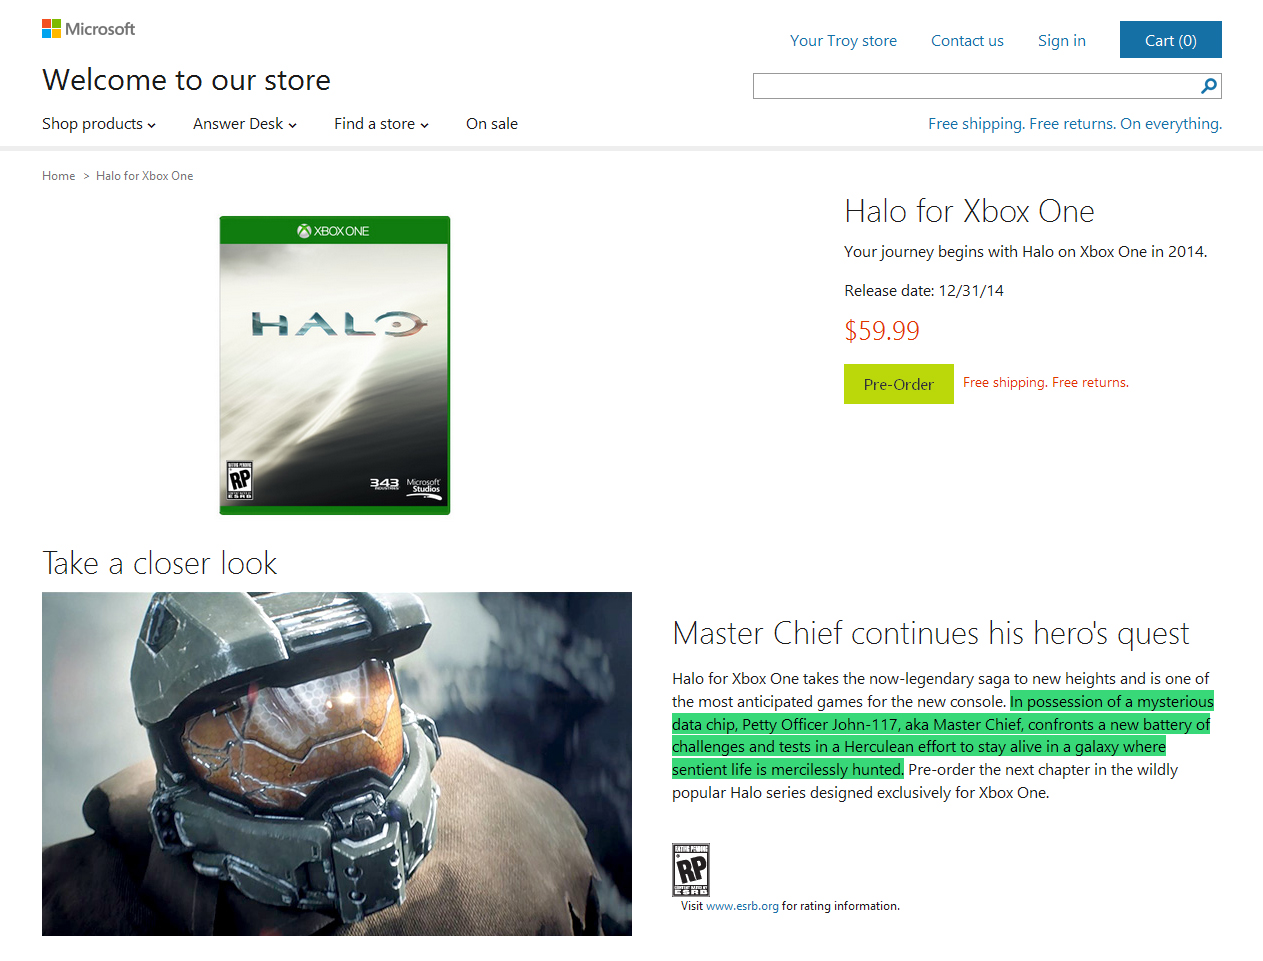 file_6270_1377827233-halo-xbox-one-story-overview1